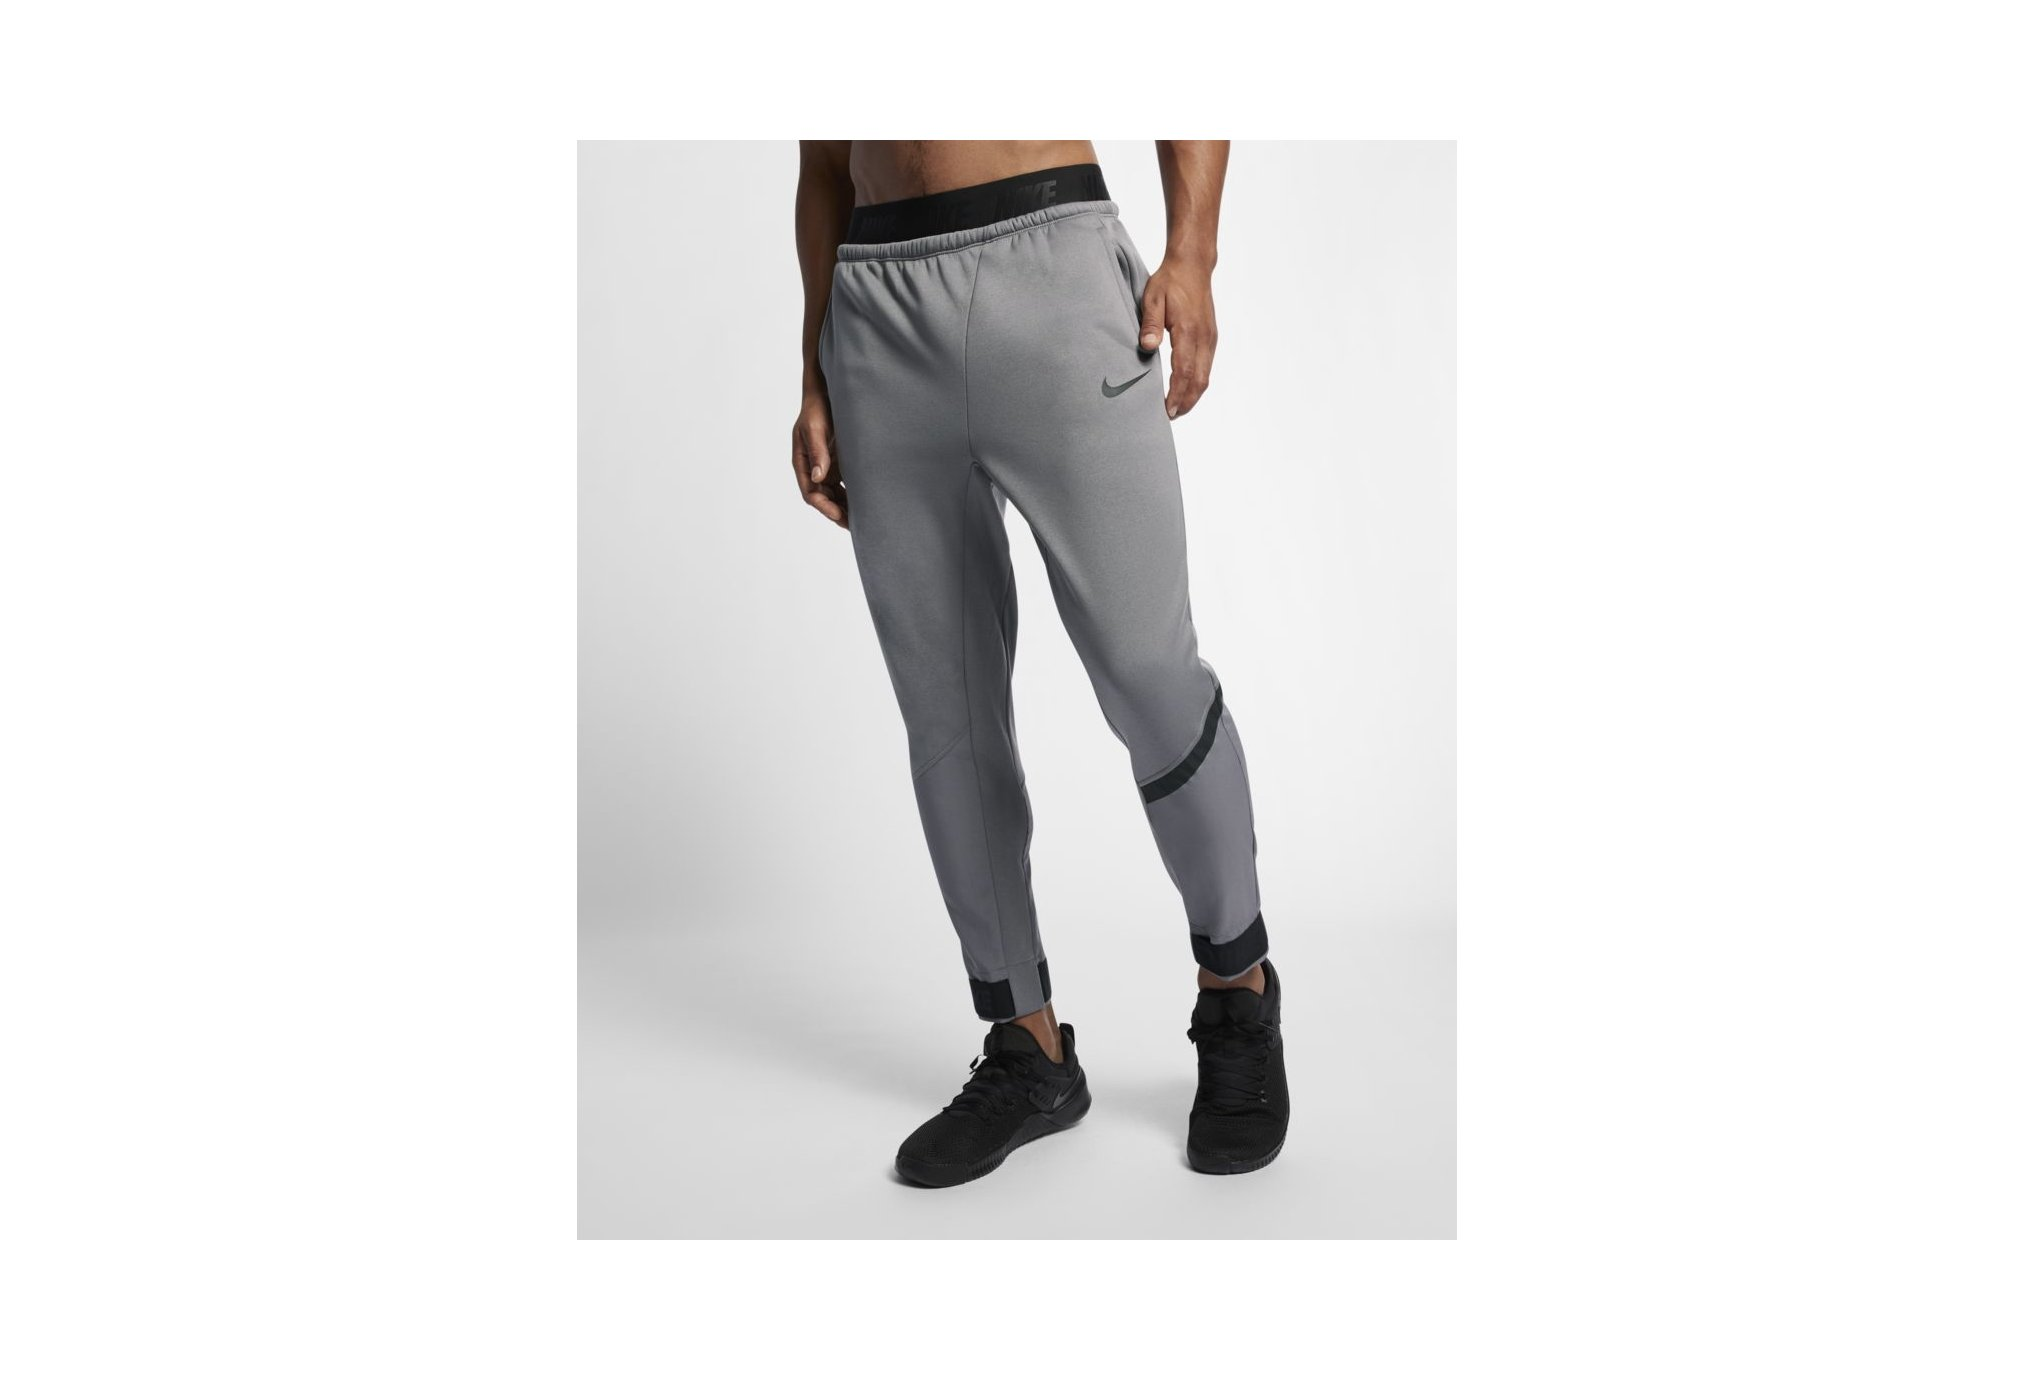 Trail Session - Nike Therma PX 3.0 M vêtement running homme f1b8be398e34